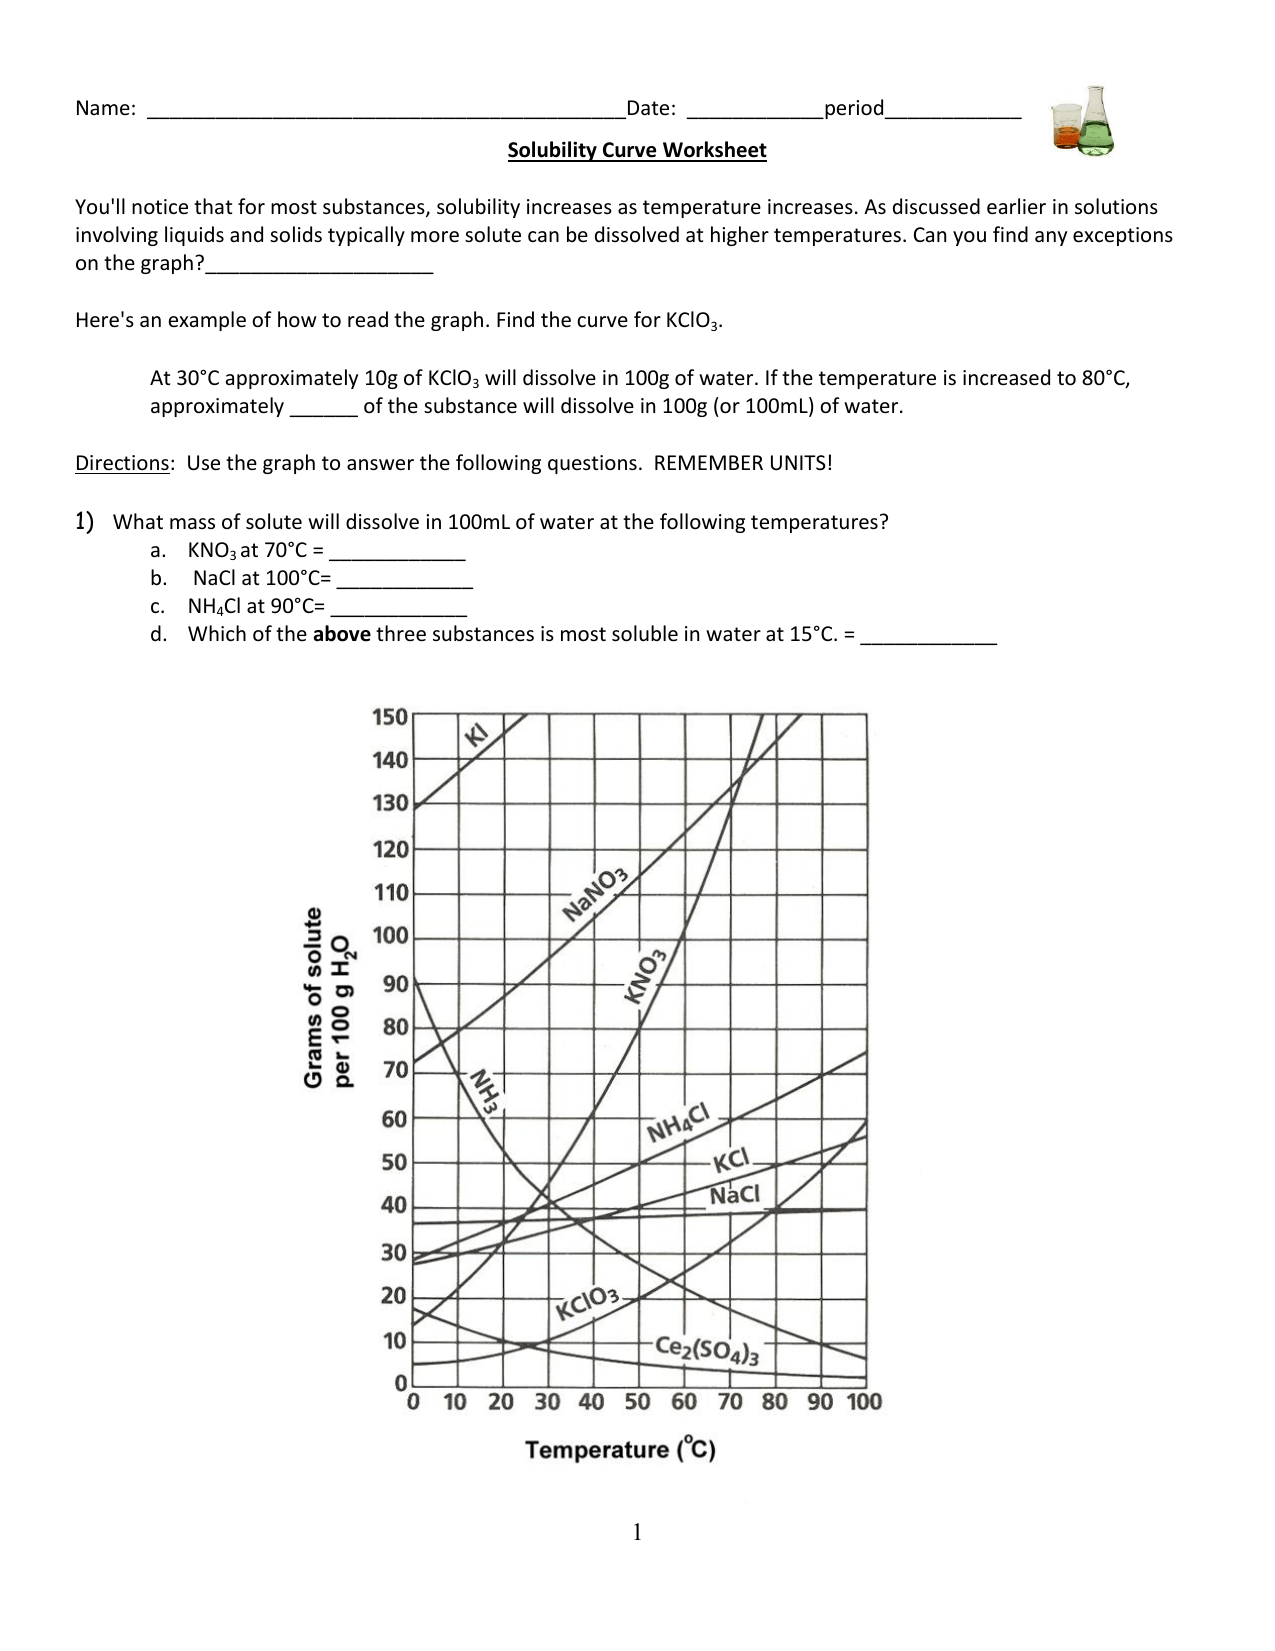 Solubility Curve Worksheet